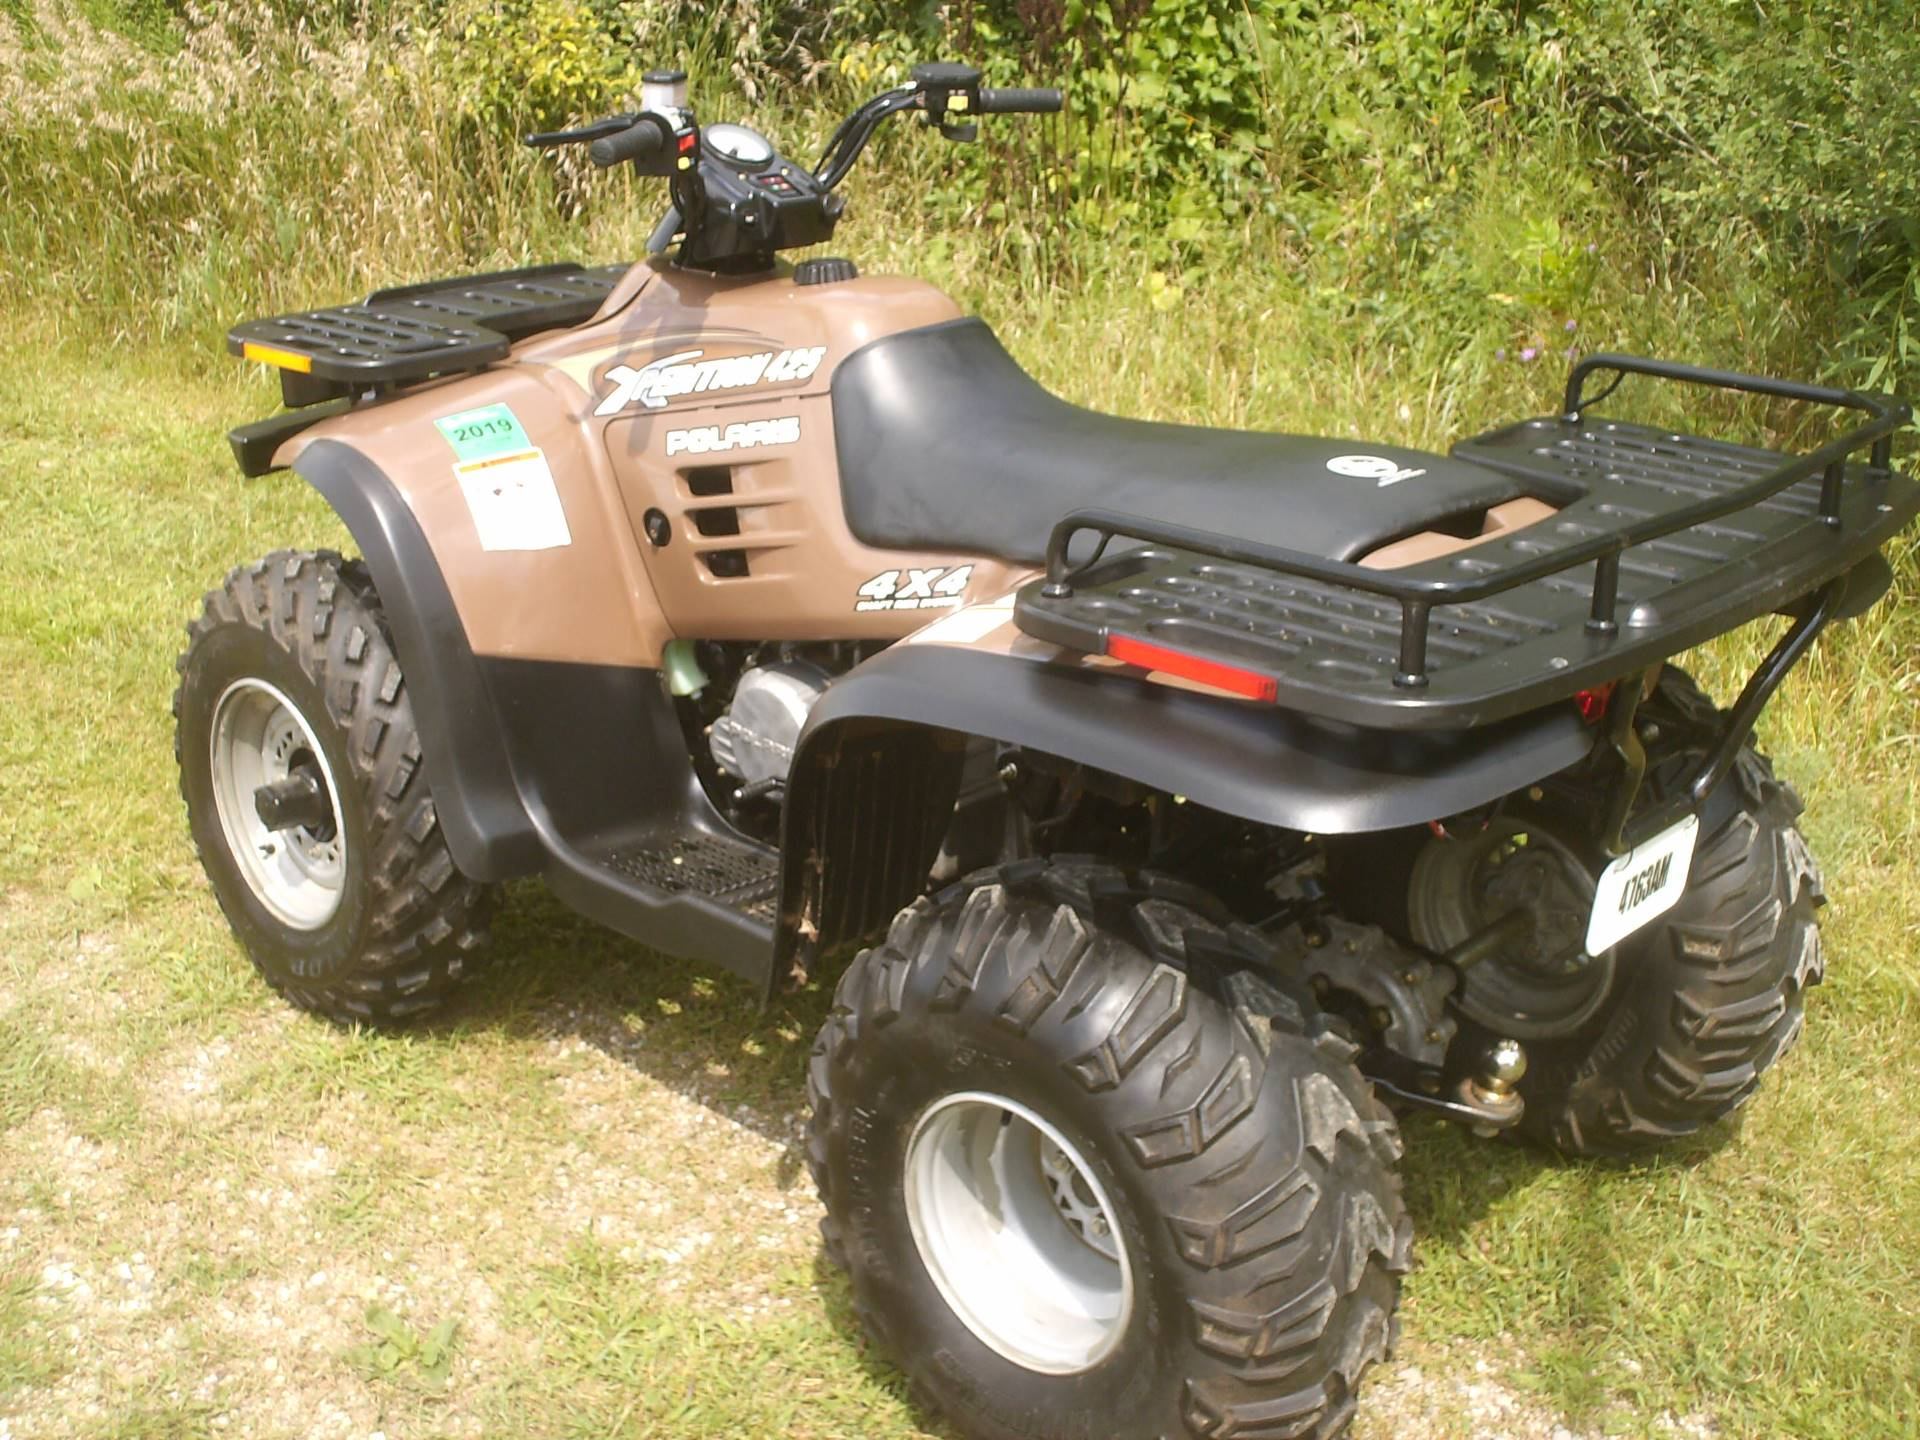 Polaris Magnum 425 Fuse Box Location Guide And Troubleshooting Of Wiring Diagram For 97 Ranger 800 Xp 325